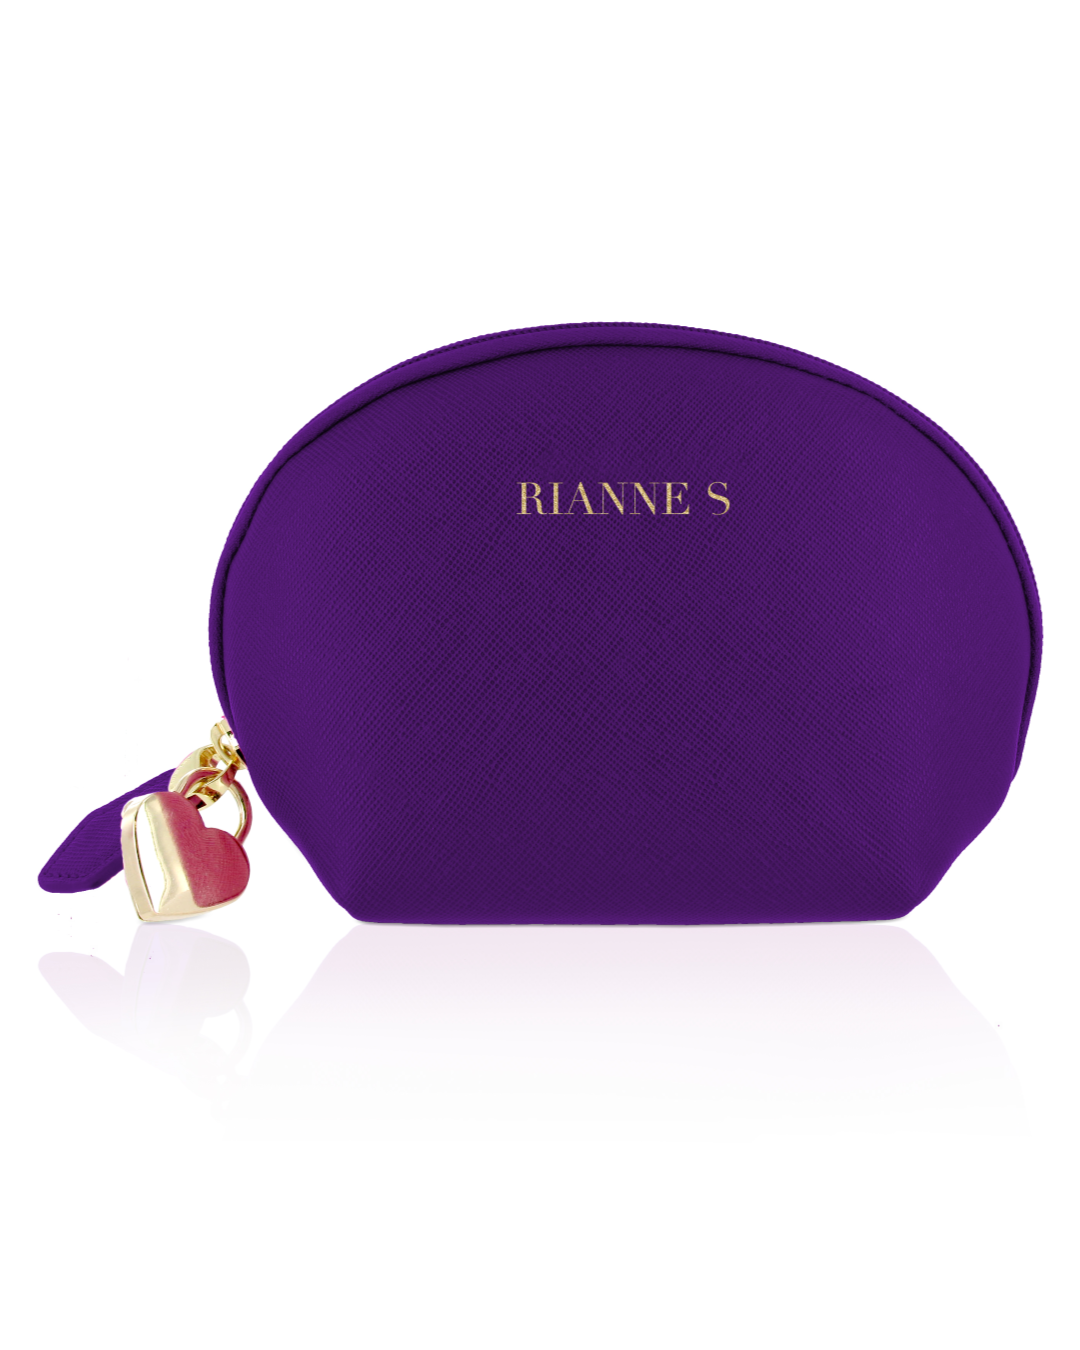 Rianne S Pulsy Playball Remote Control Kegel Exerciser - Deep Purple makeup case